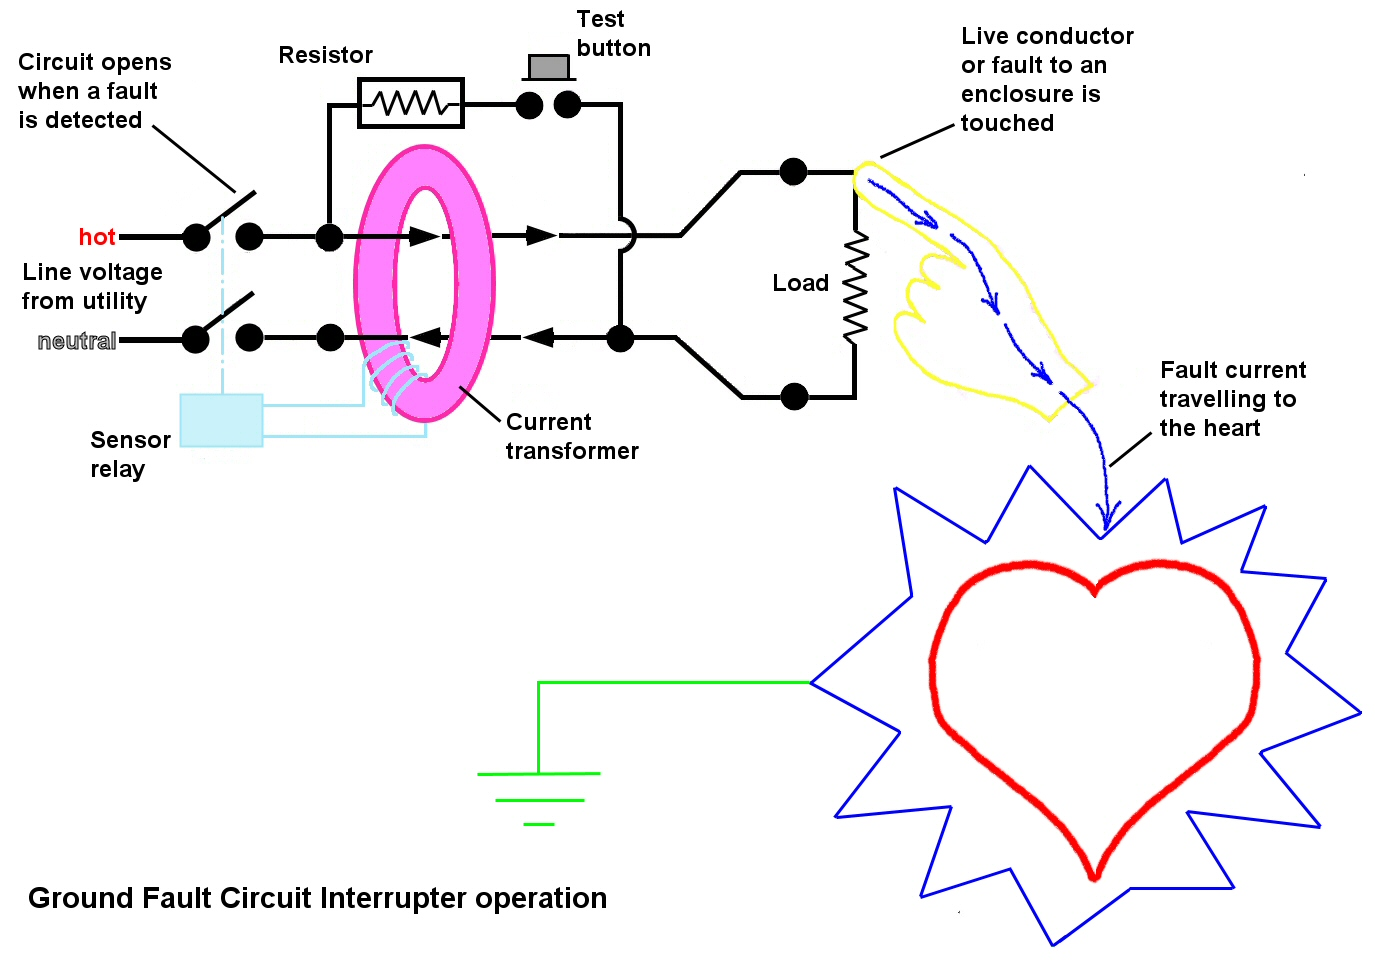 Circuit Diagram Elcb Wiring And Ebooks Nations Home Inspections Inc Blog Of Rccb